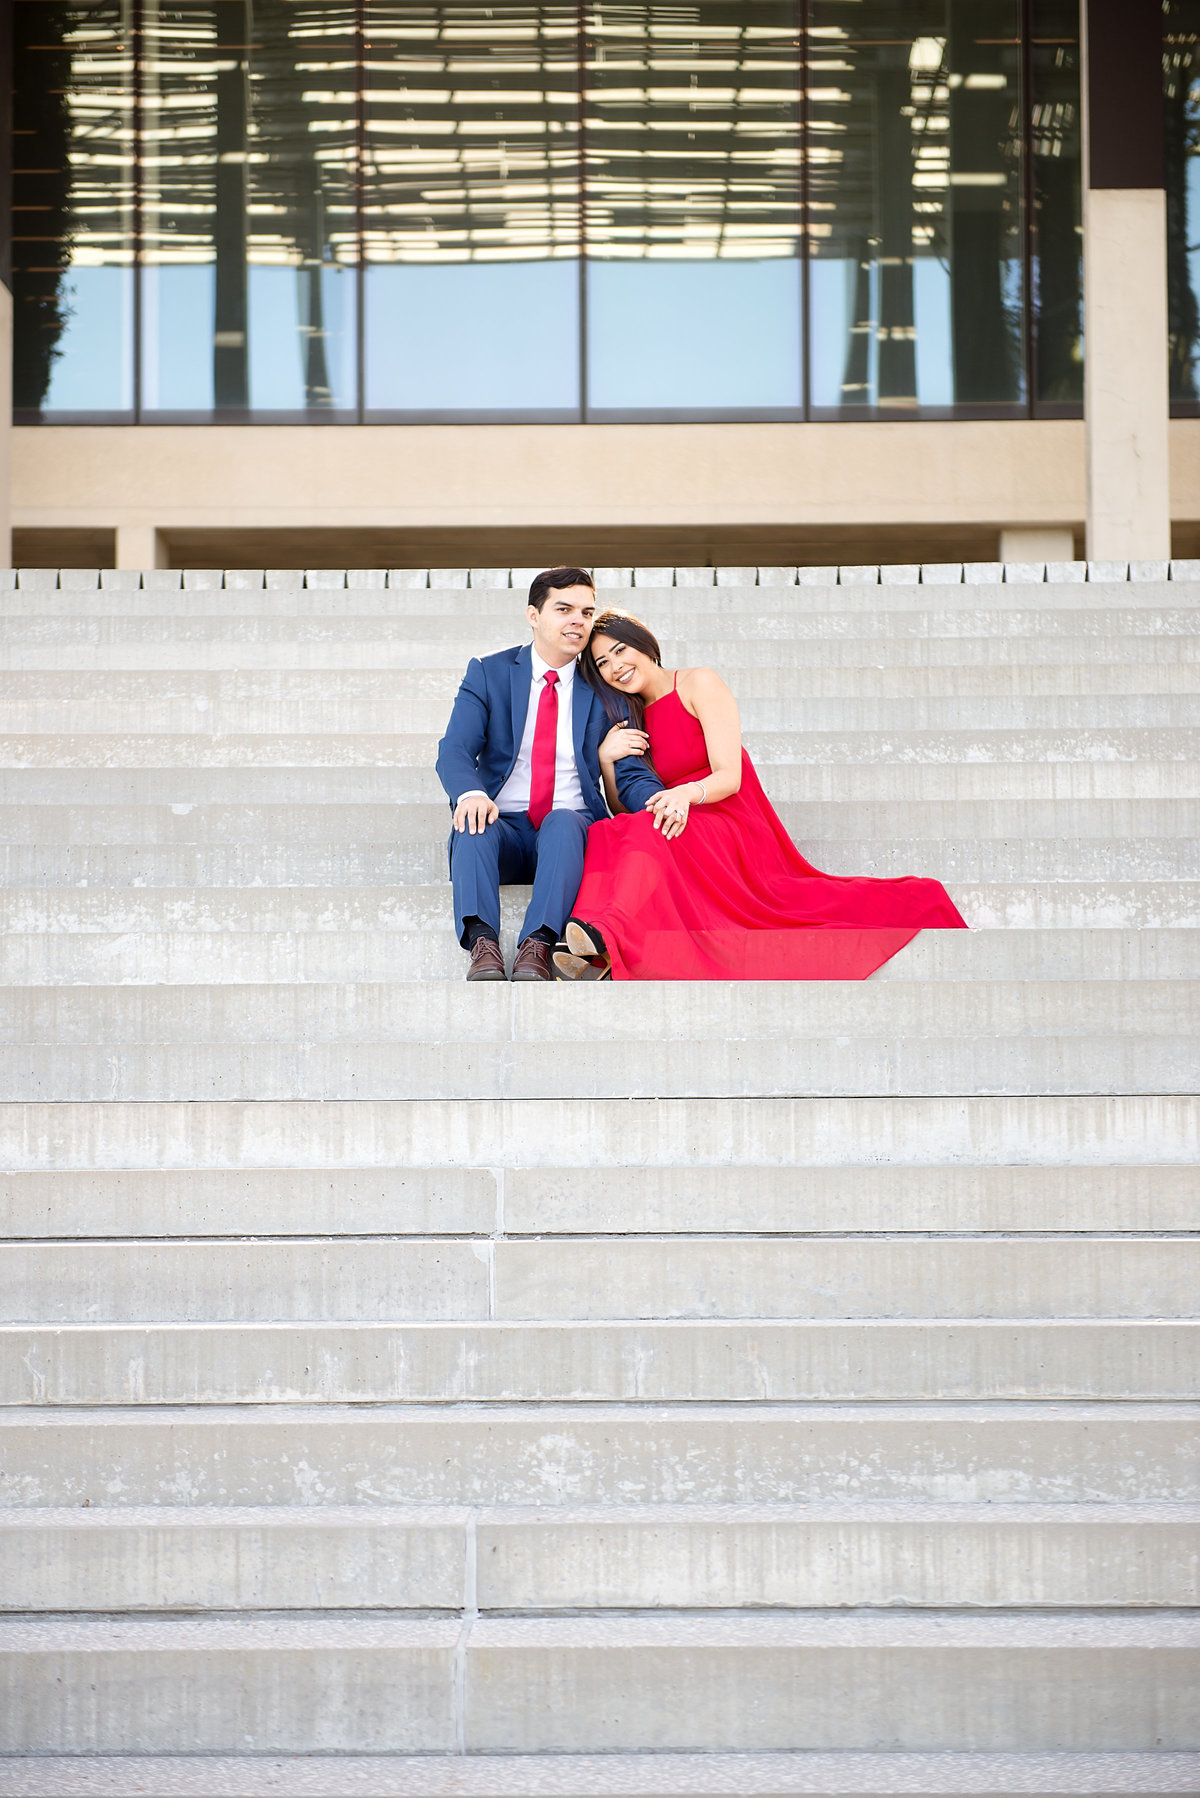 Steph-Juan-Engagement-Sneak-Peek-Perez-Art-Museum-Miami-PAMM-7